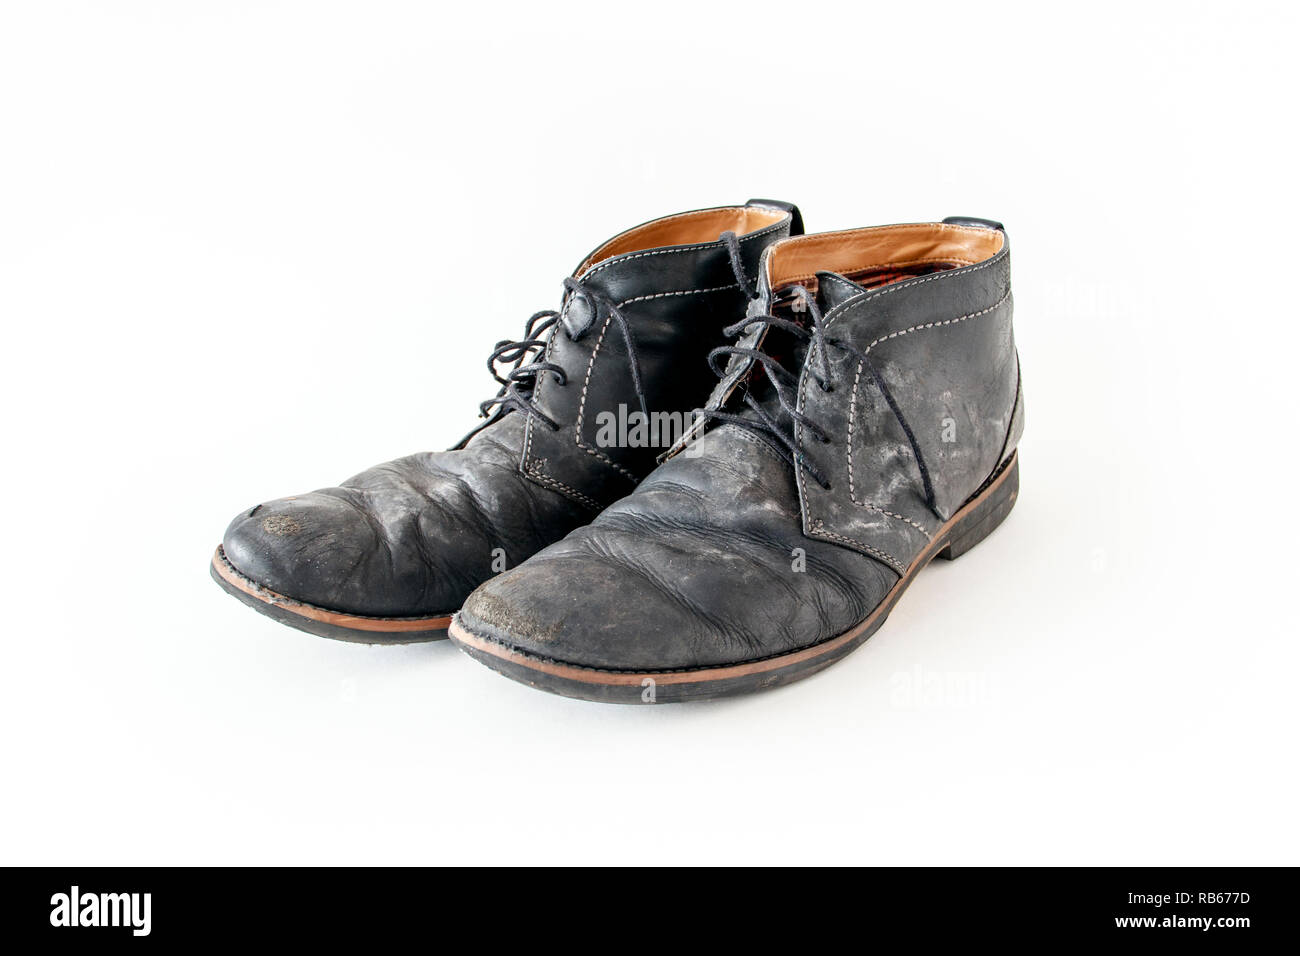 A pair of old tattered black leather lace-up shoes with water stains - Stock Image